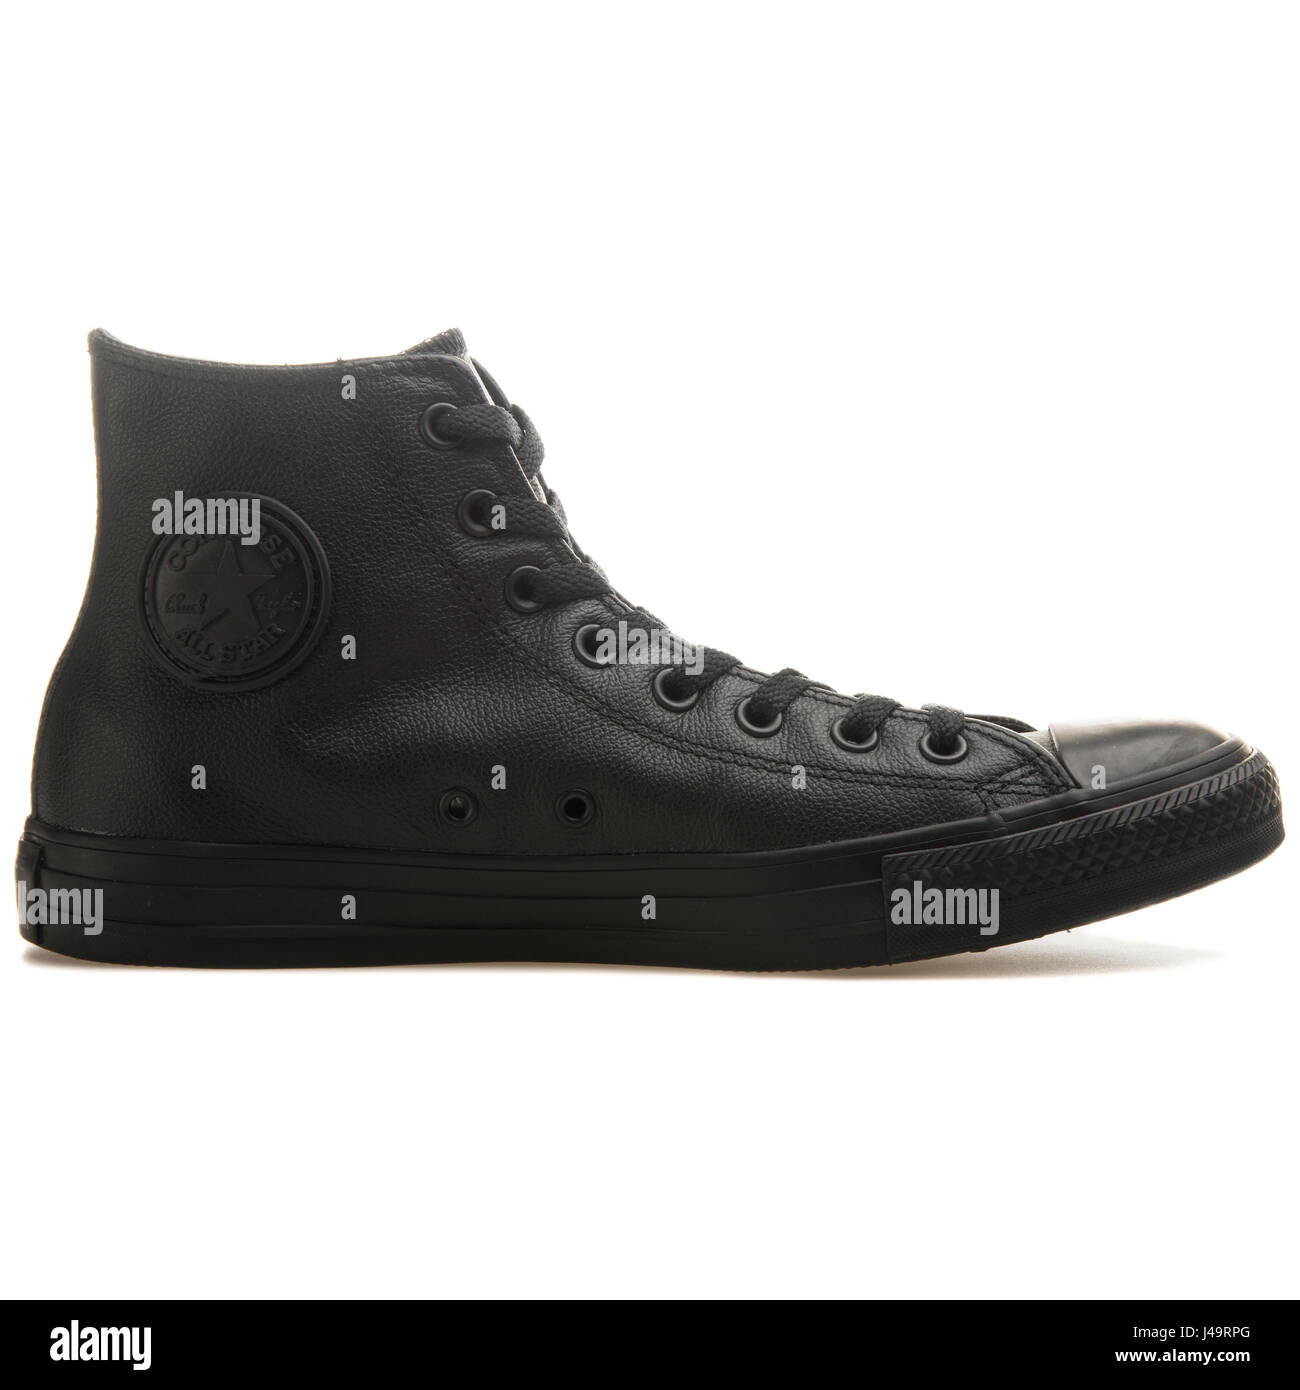 Foto Converse. Zapatillas Converse ALL STAR negro foto 1807